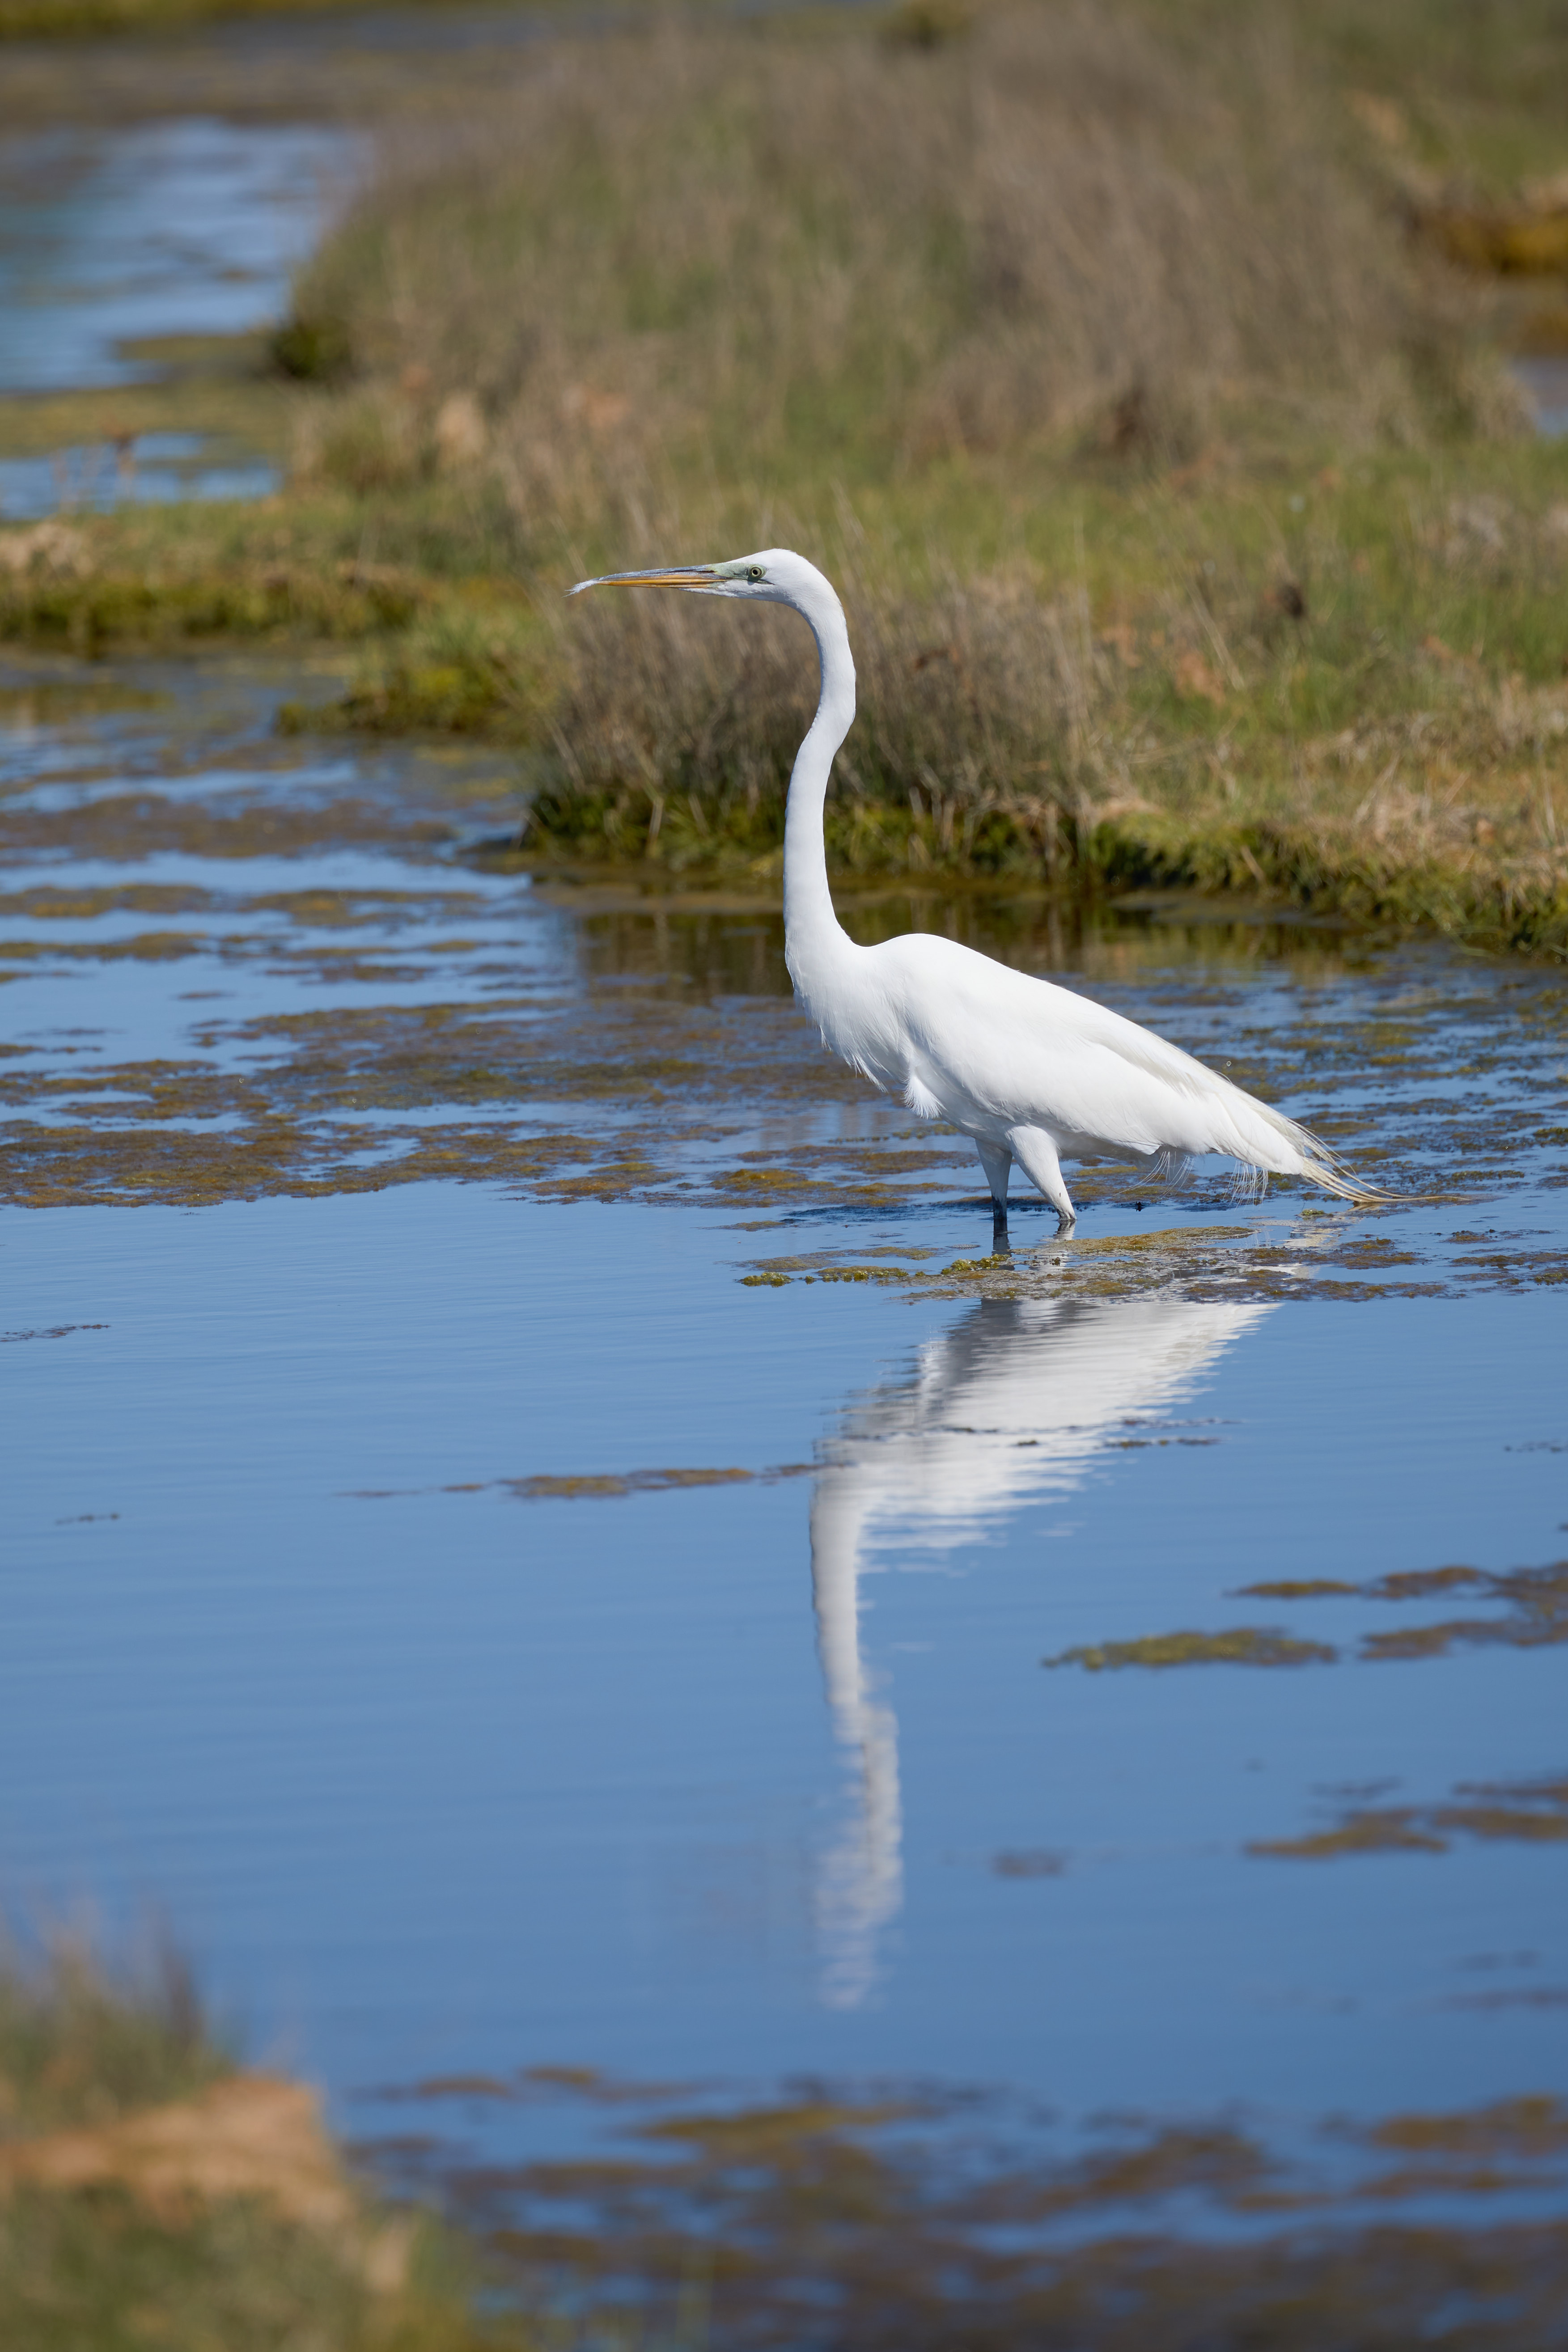 Egret standing in waters of marshland, its reflection in water below.